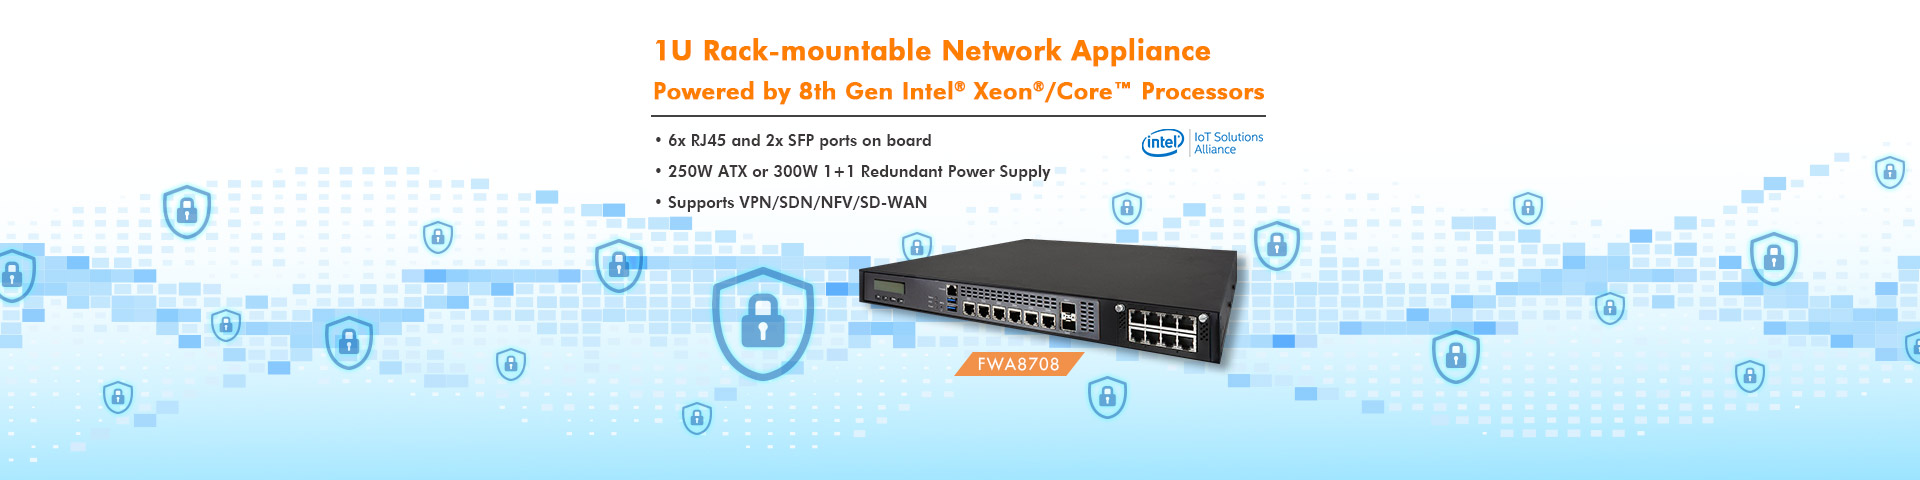 1U Rack-mountable Network Appliance Powered by 8th Gen Intel Xeon/Core Processors